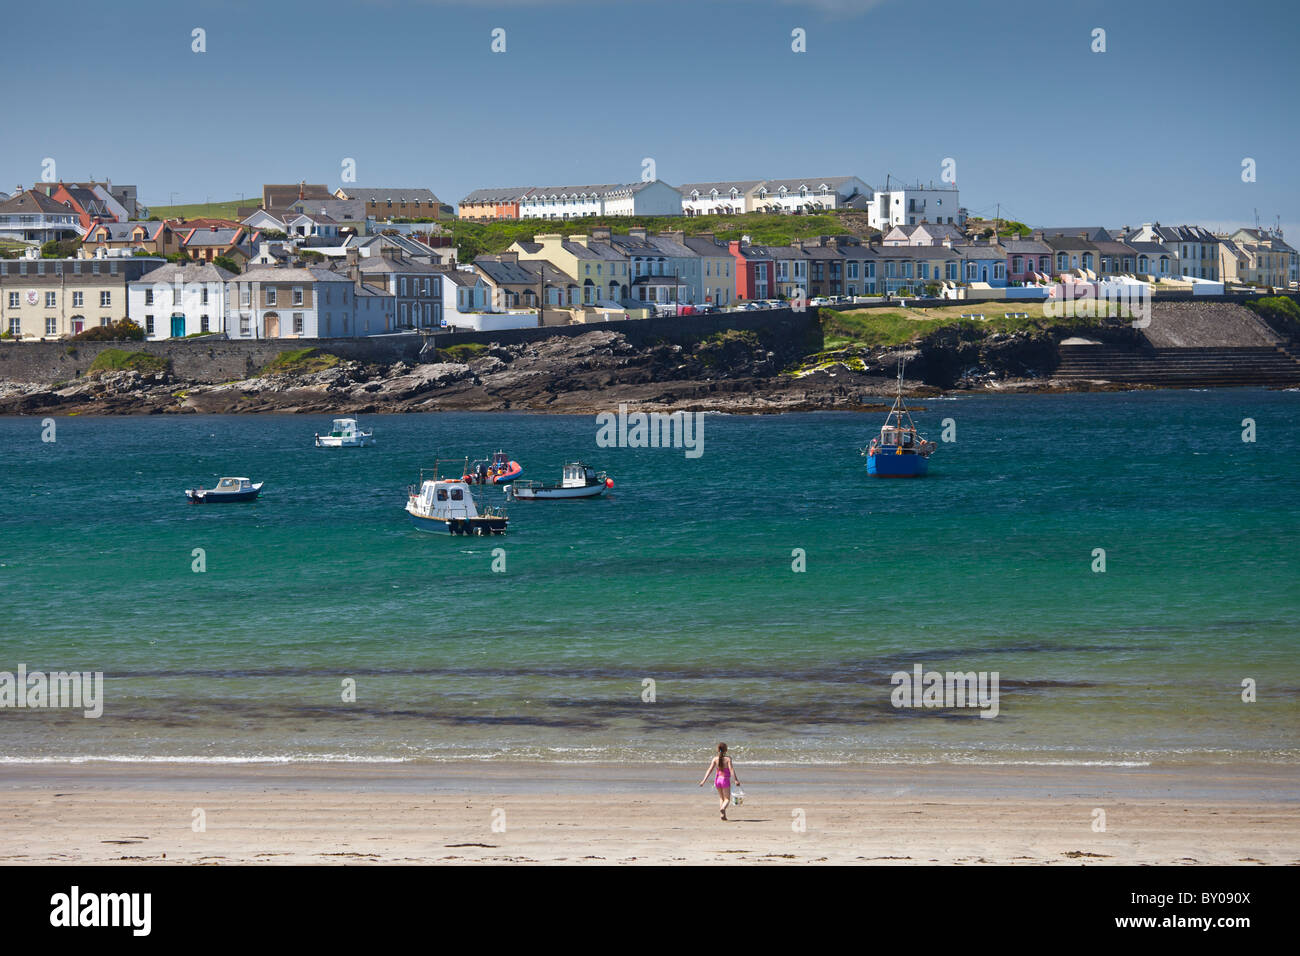 Ocean front houses and child playing on sandy beach at Kilkee County Clare, West Coast of Ireland - Stock Image